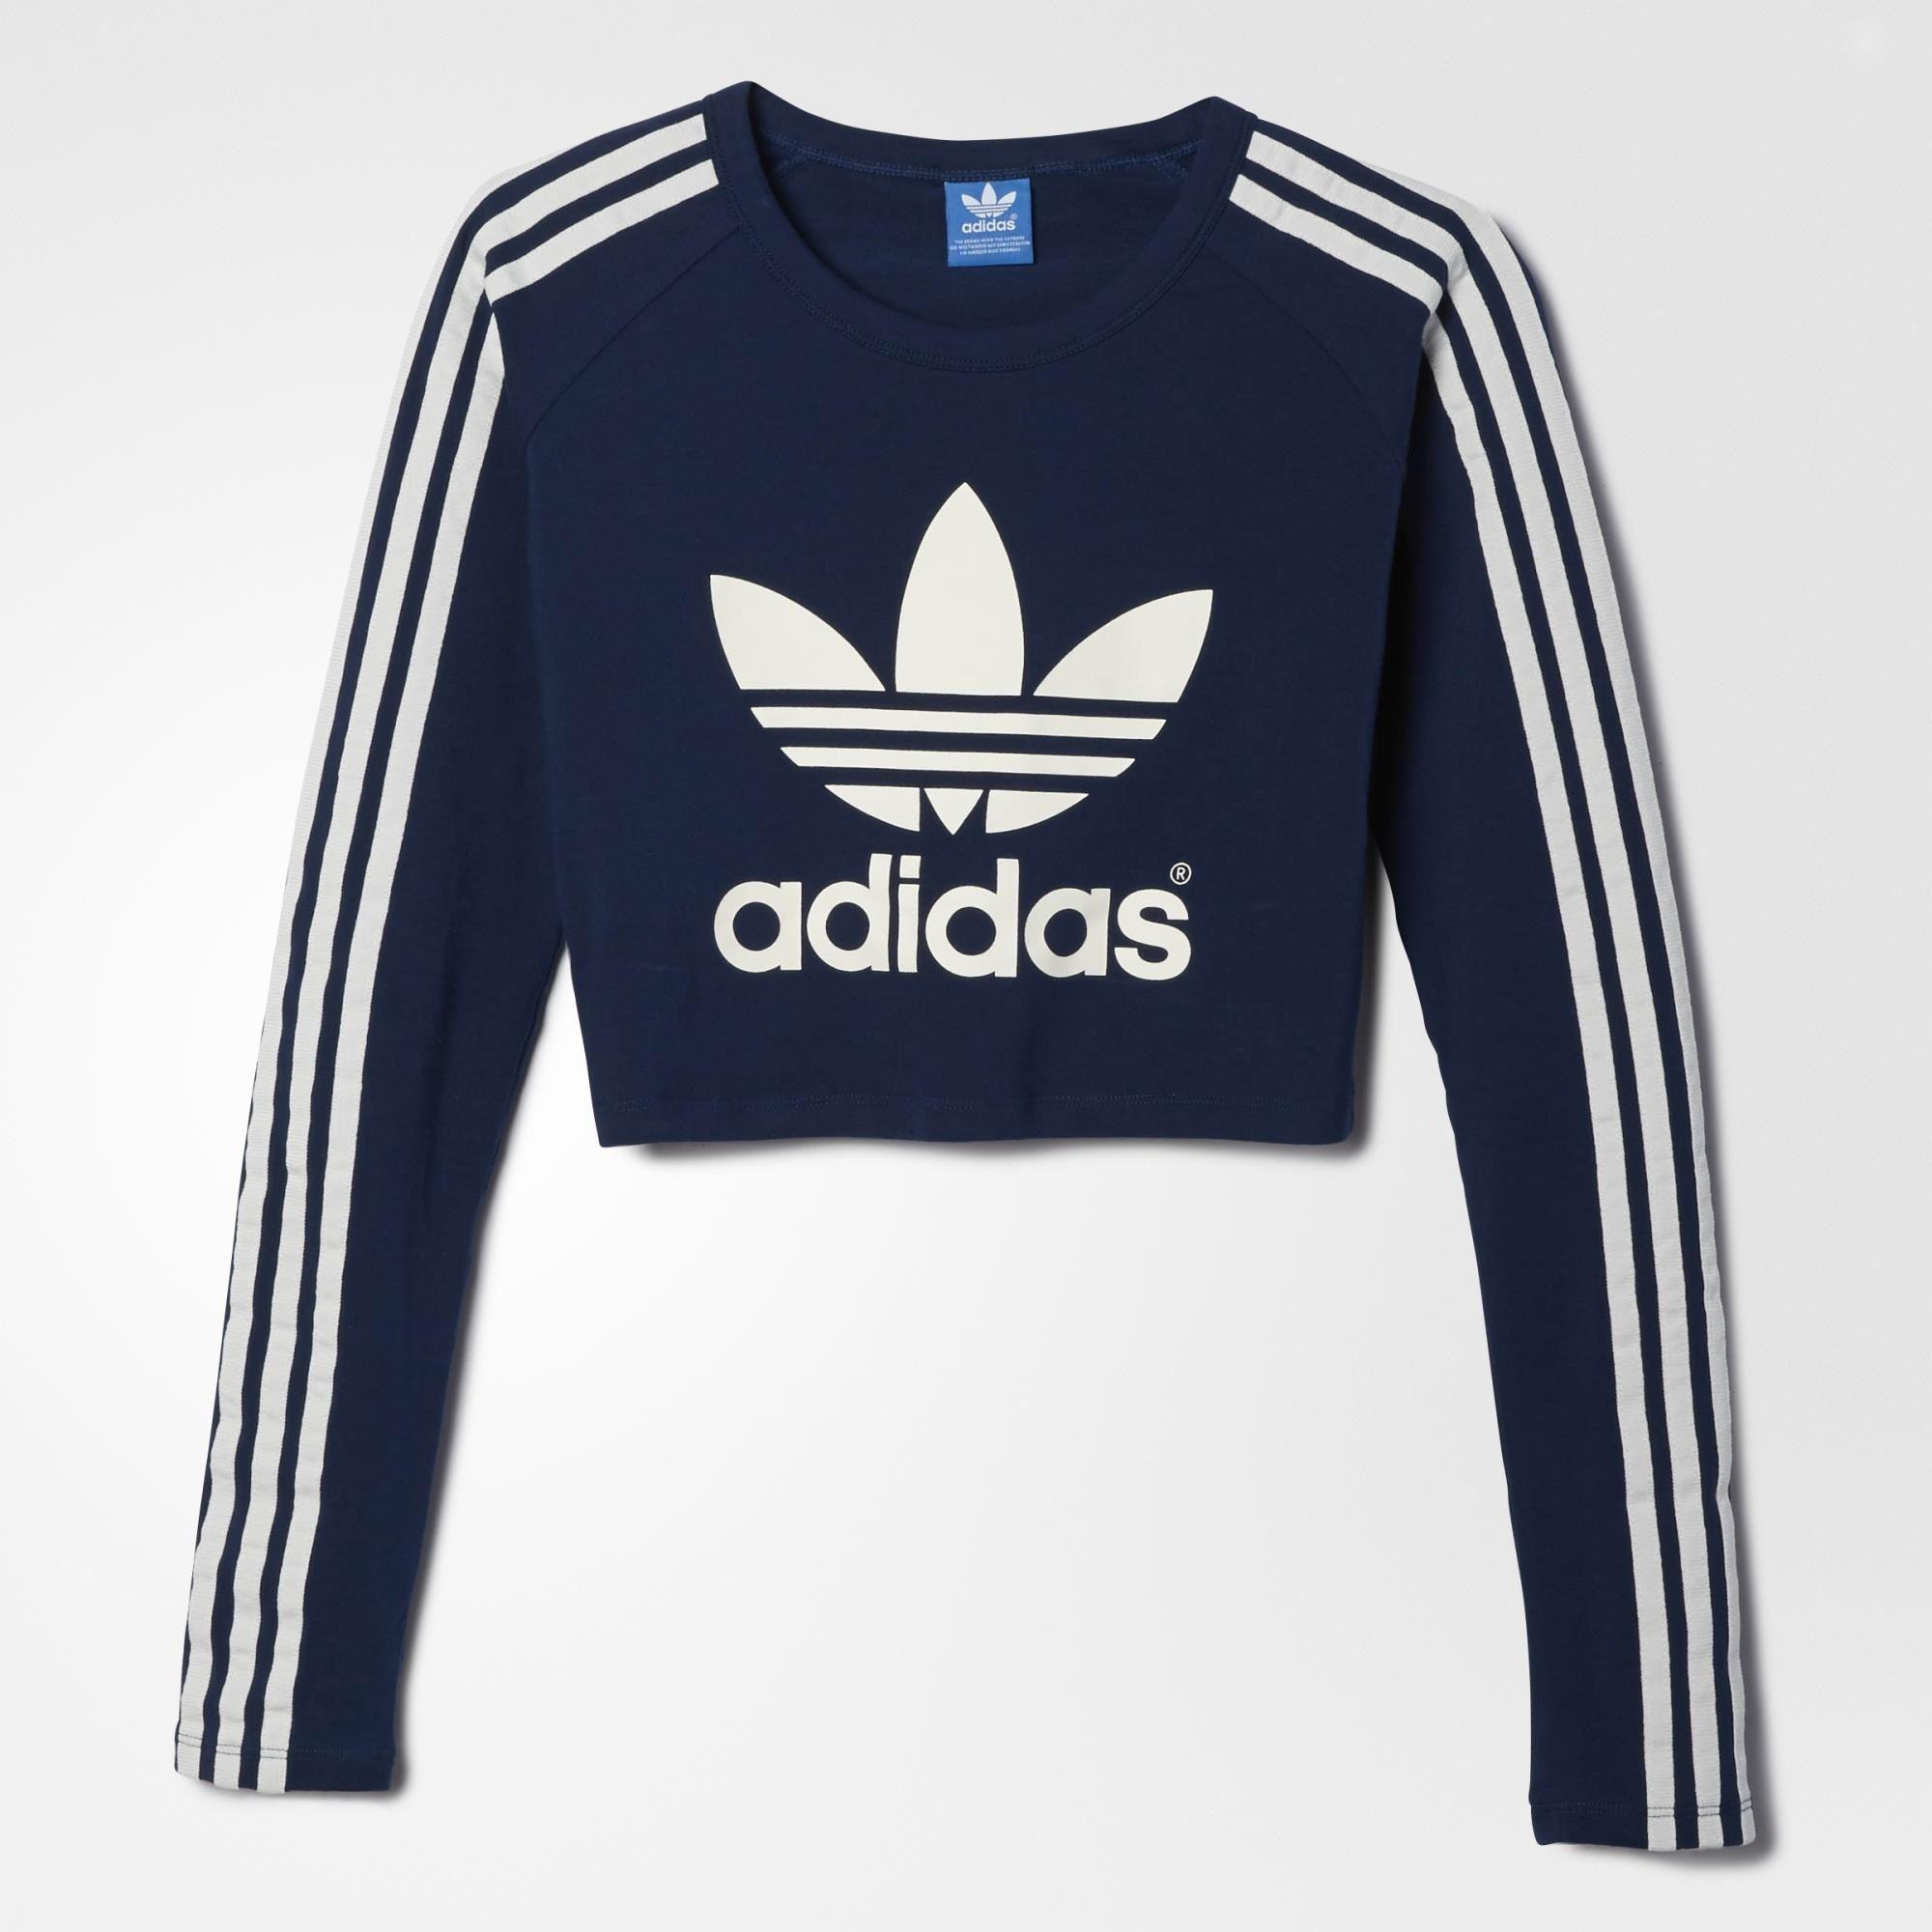 Adidas Paris Crop Tee Blue Adidas Us From Adidas